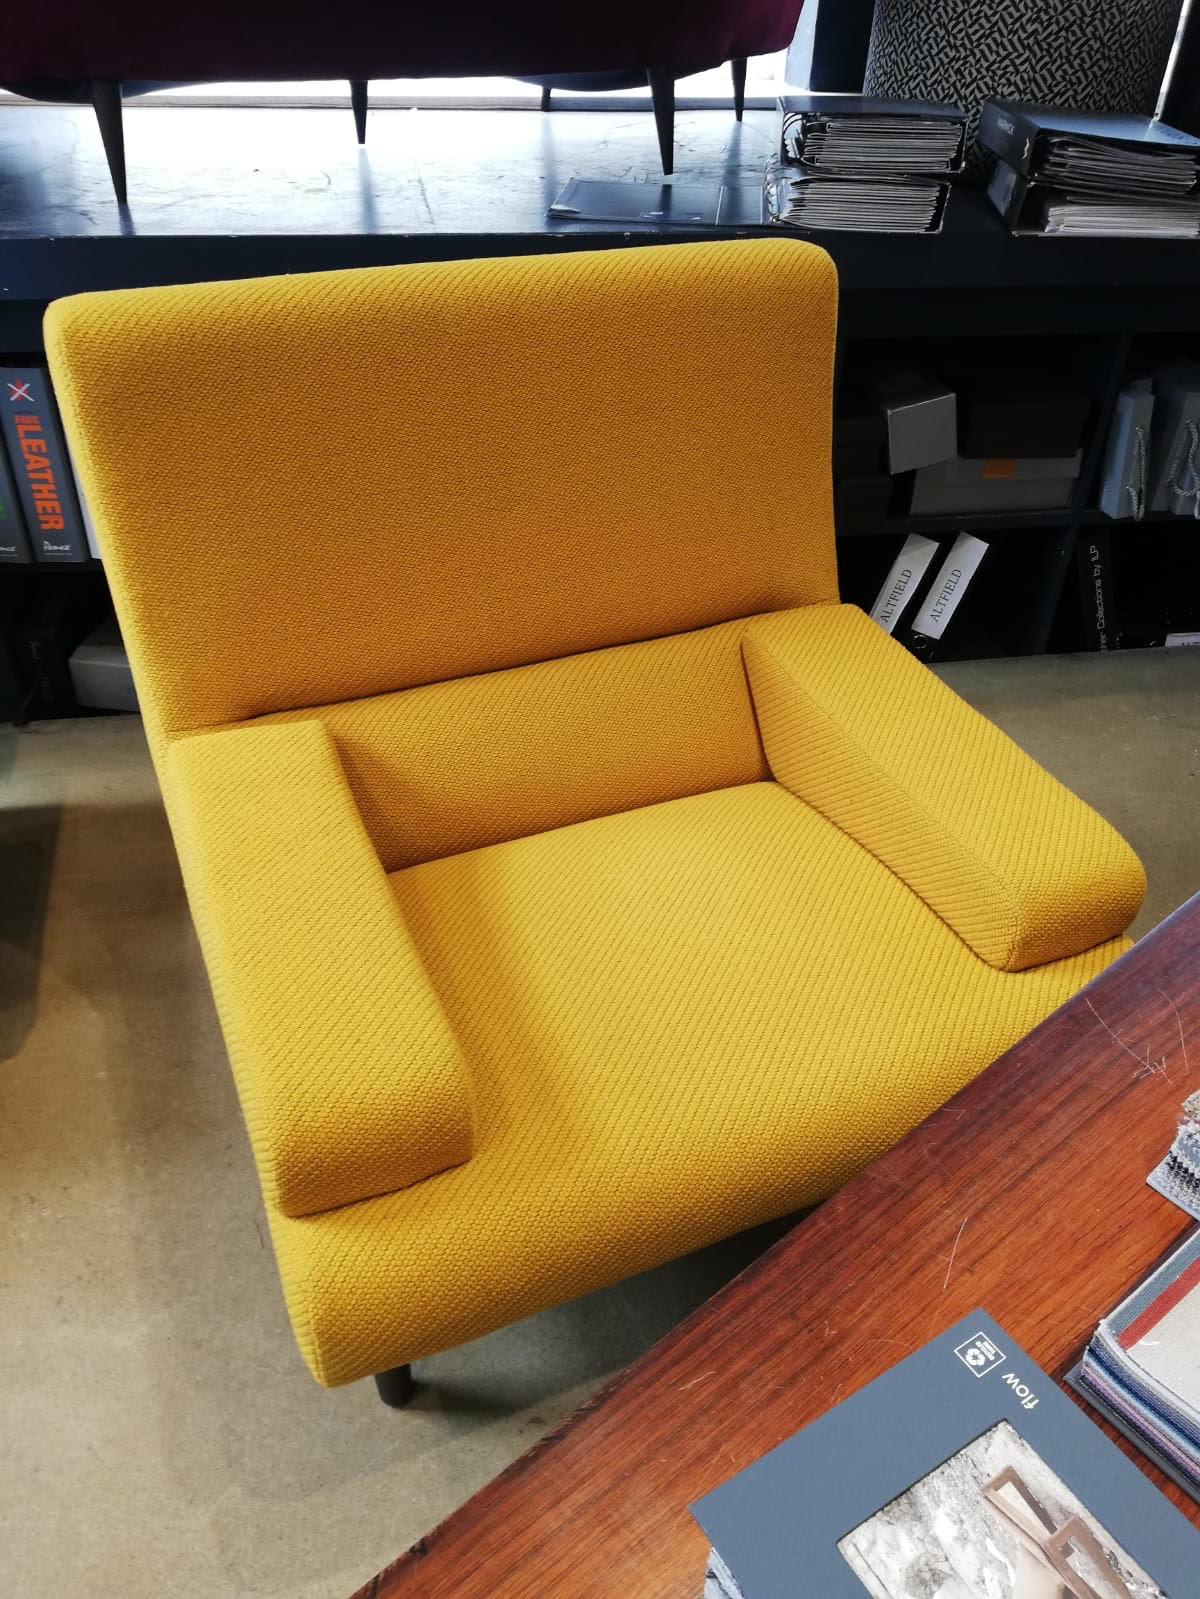 Upholstery image 1